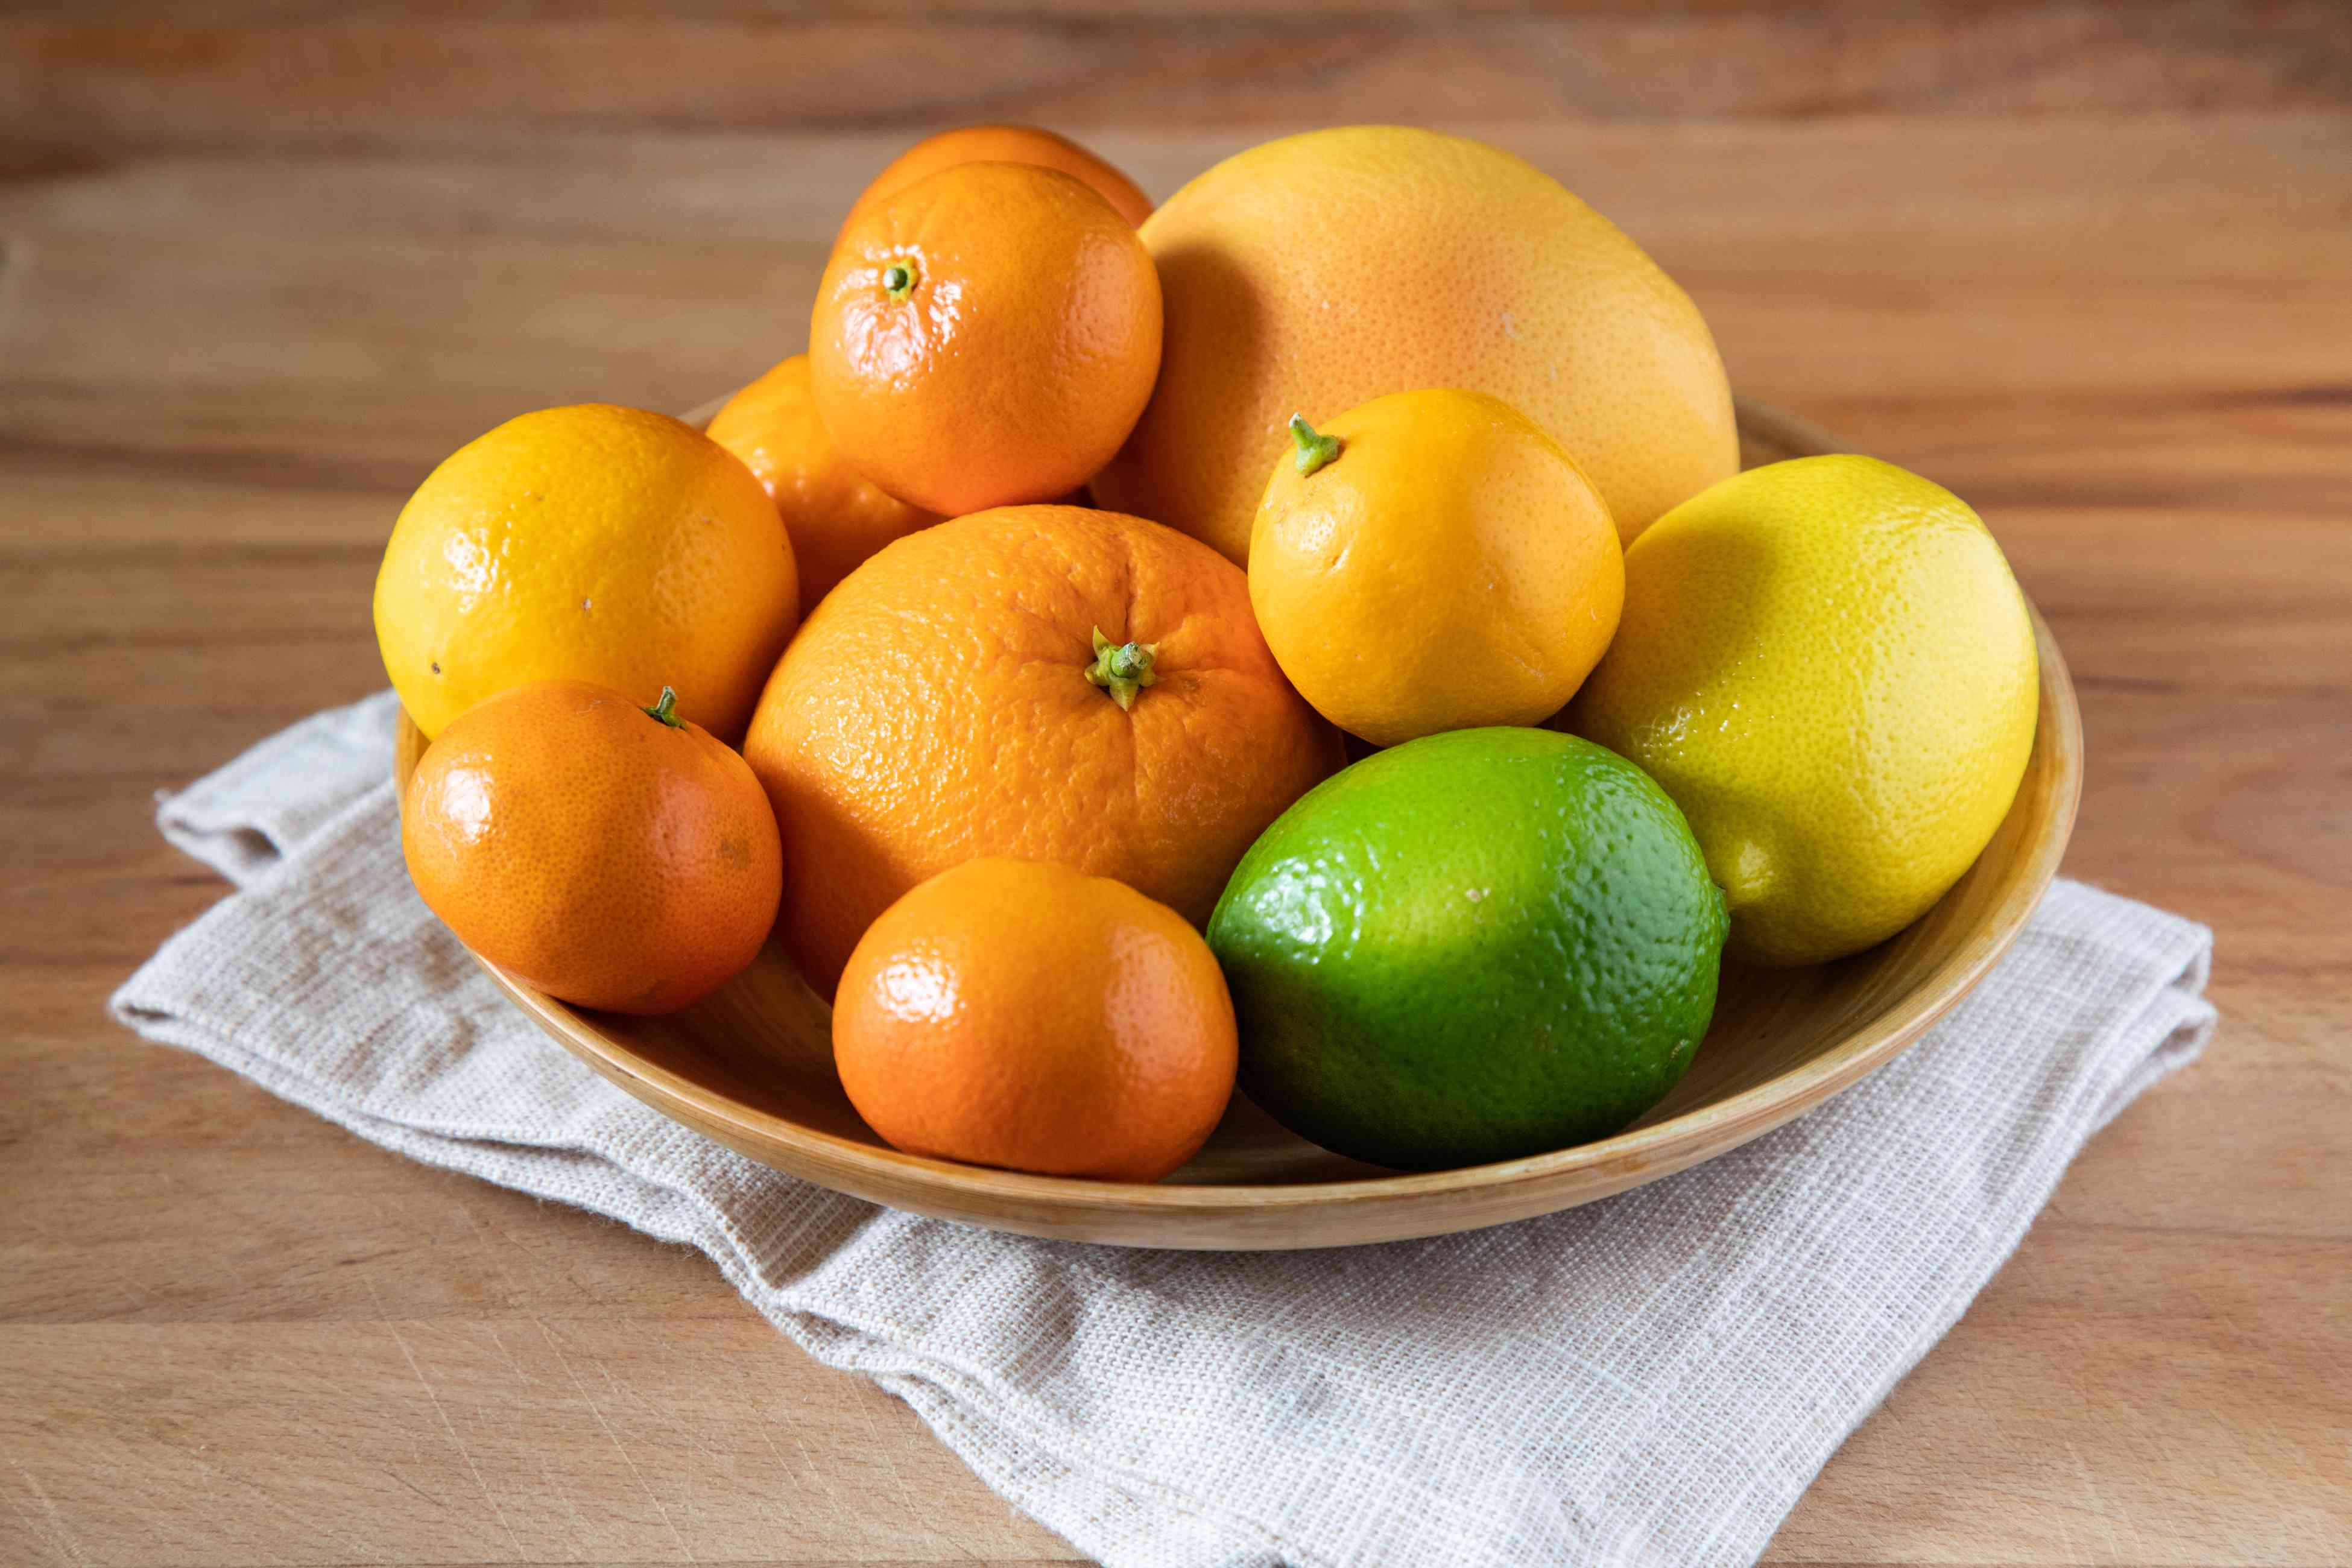 Citrus in a bowl on a wooden countertop